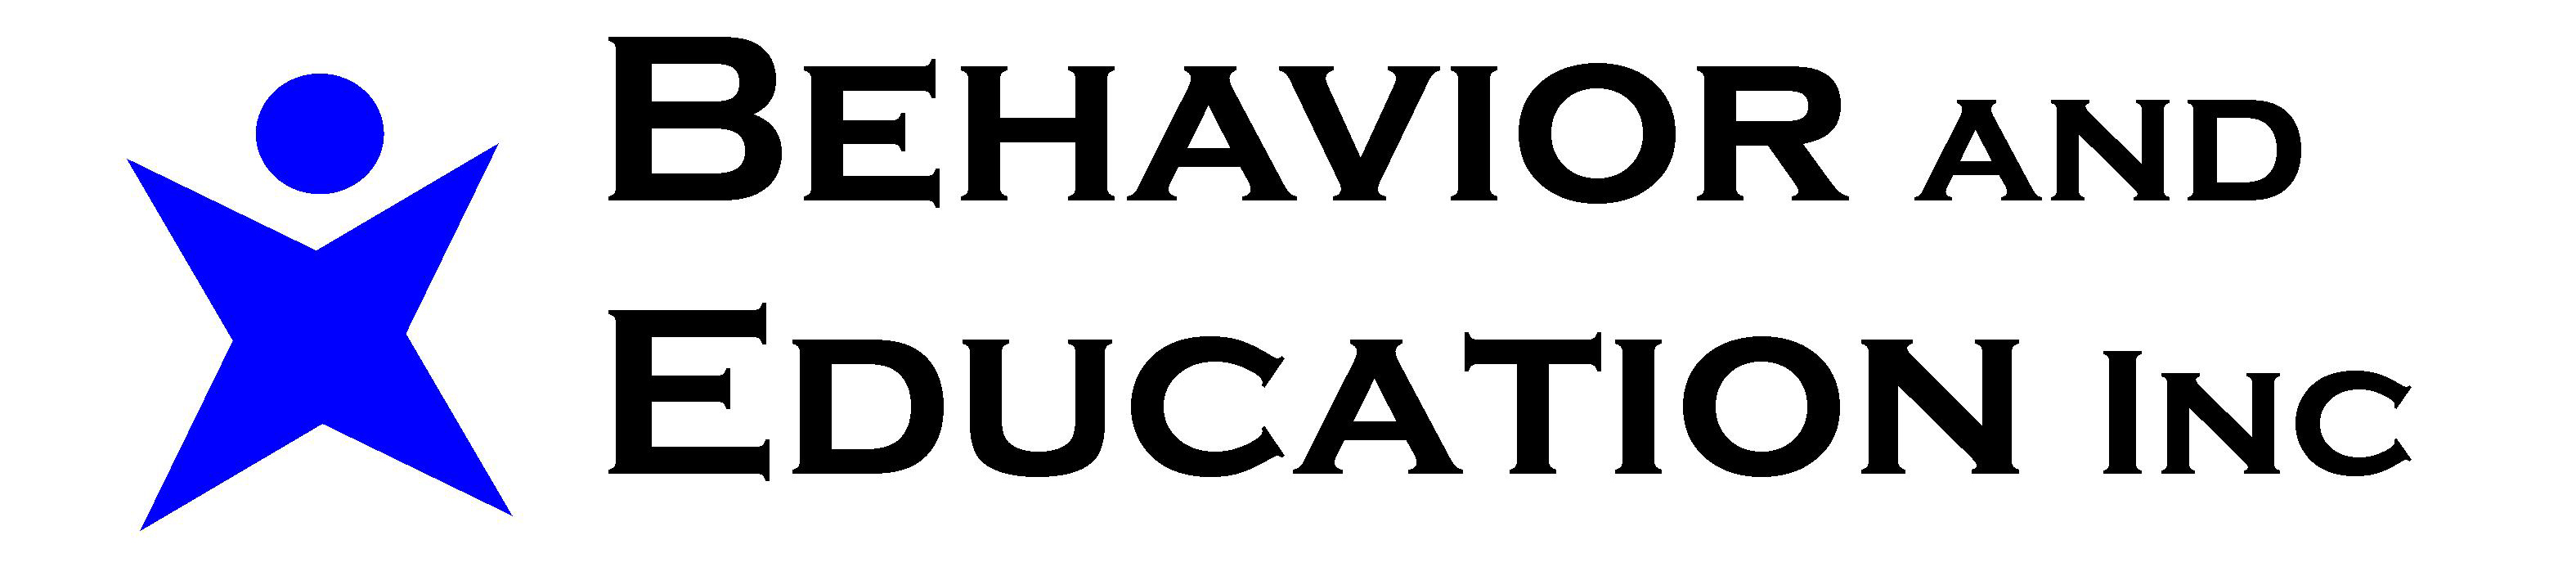 Behavior and Education Inc